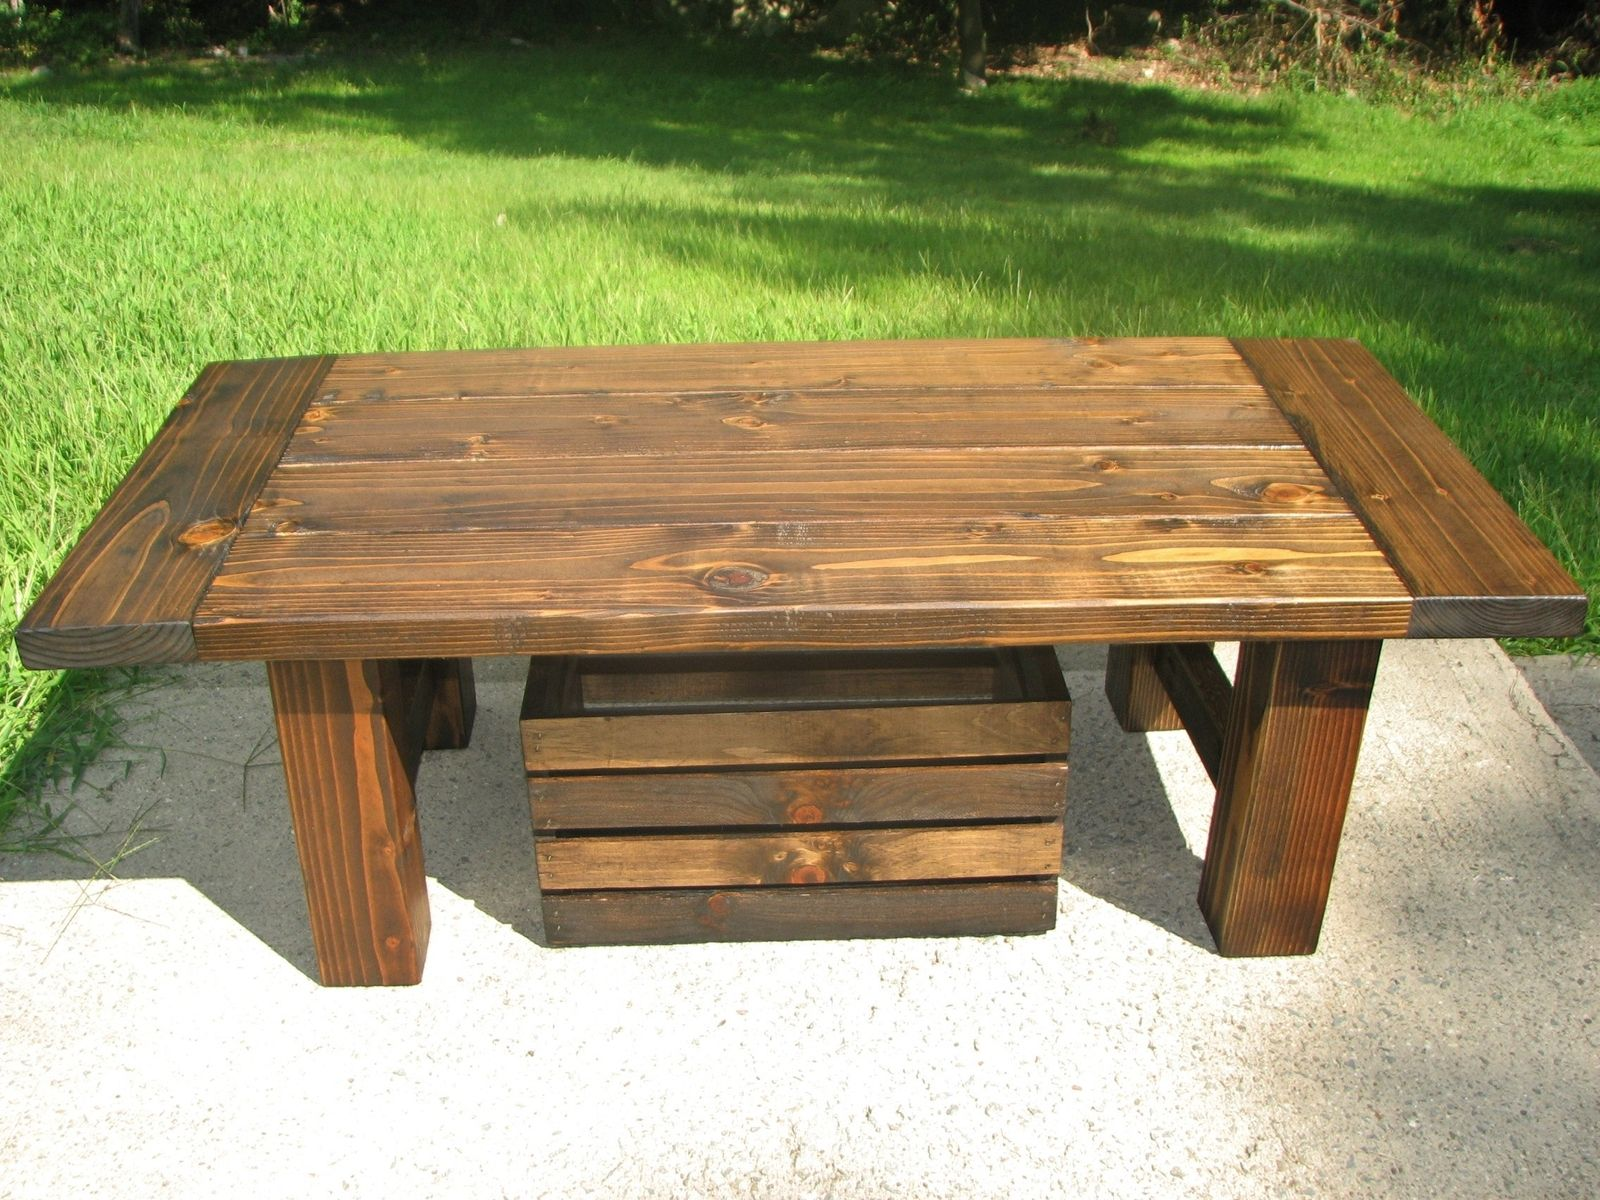 Buy a Handmade Country Coffee Table made to order from Custom